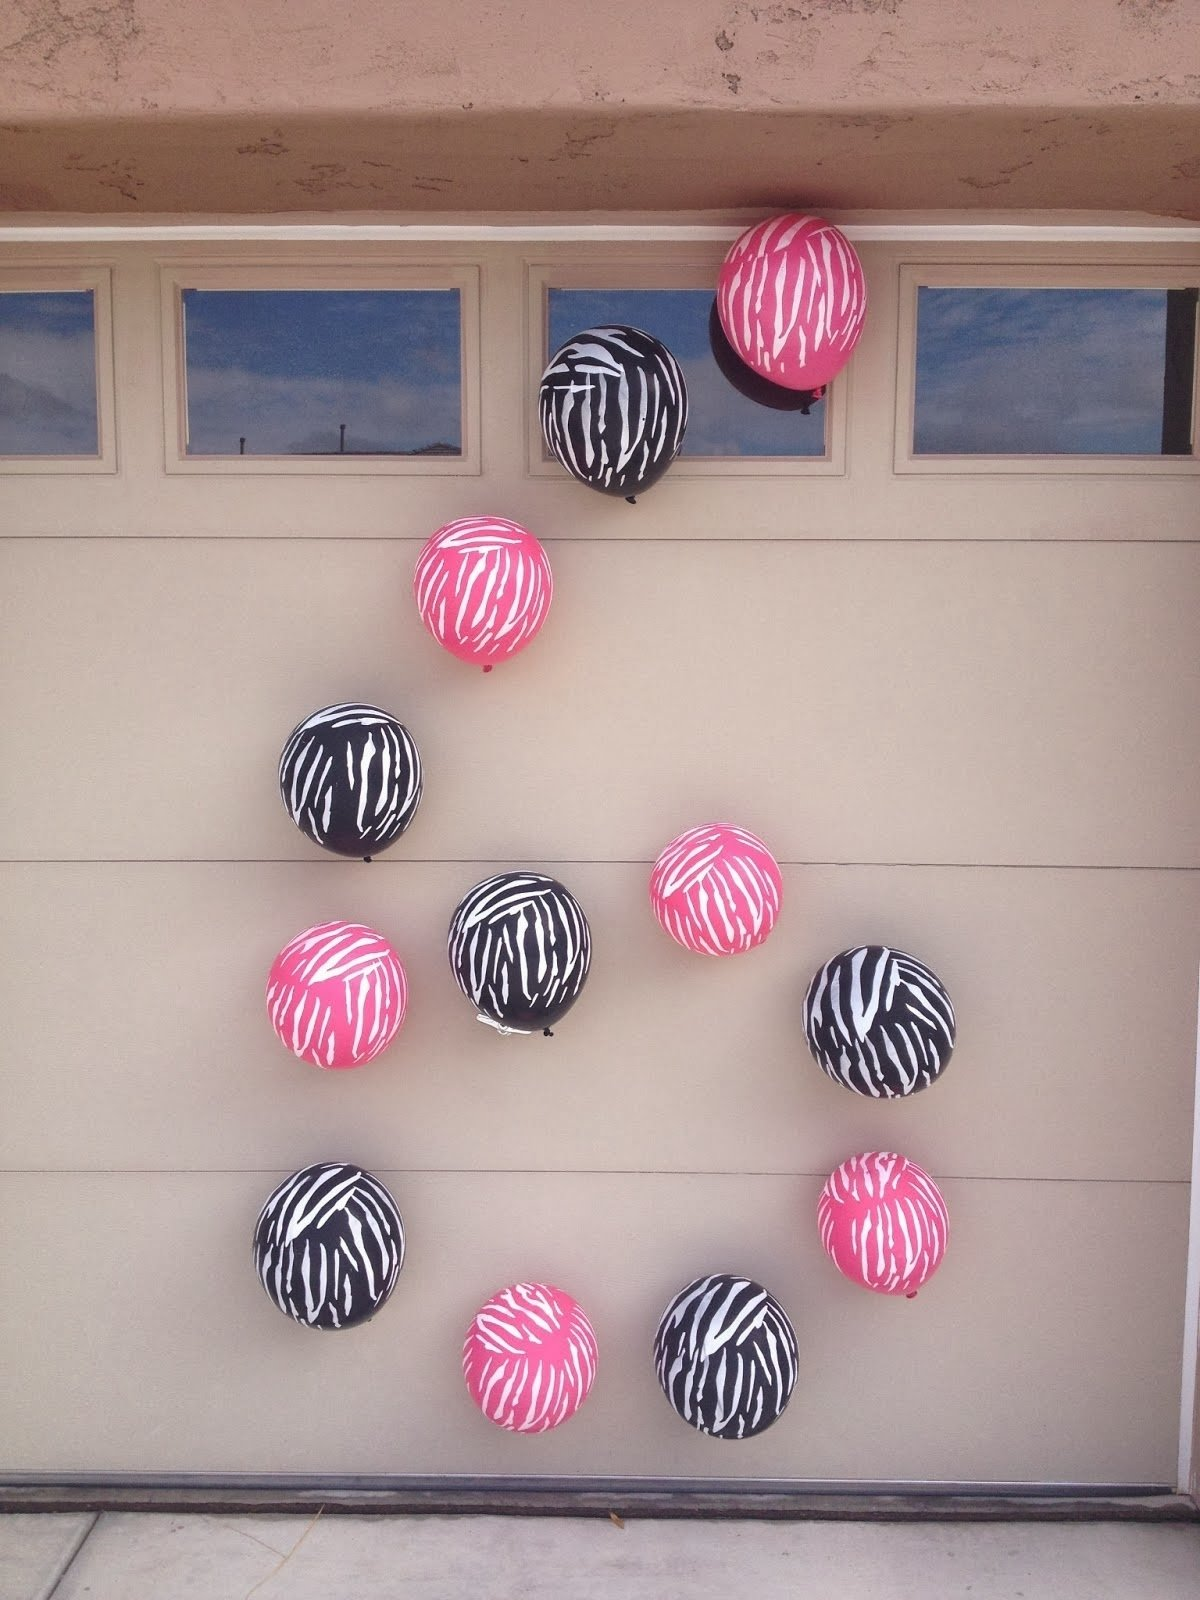 10 Great Birthday Party Ideas For Girls Age 6 20 ideas and activities to plan and decorate for a balloon birthday 2020